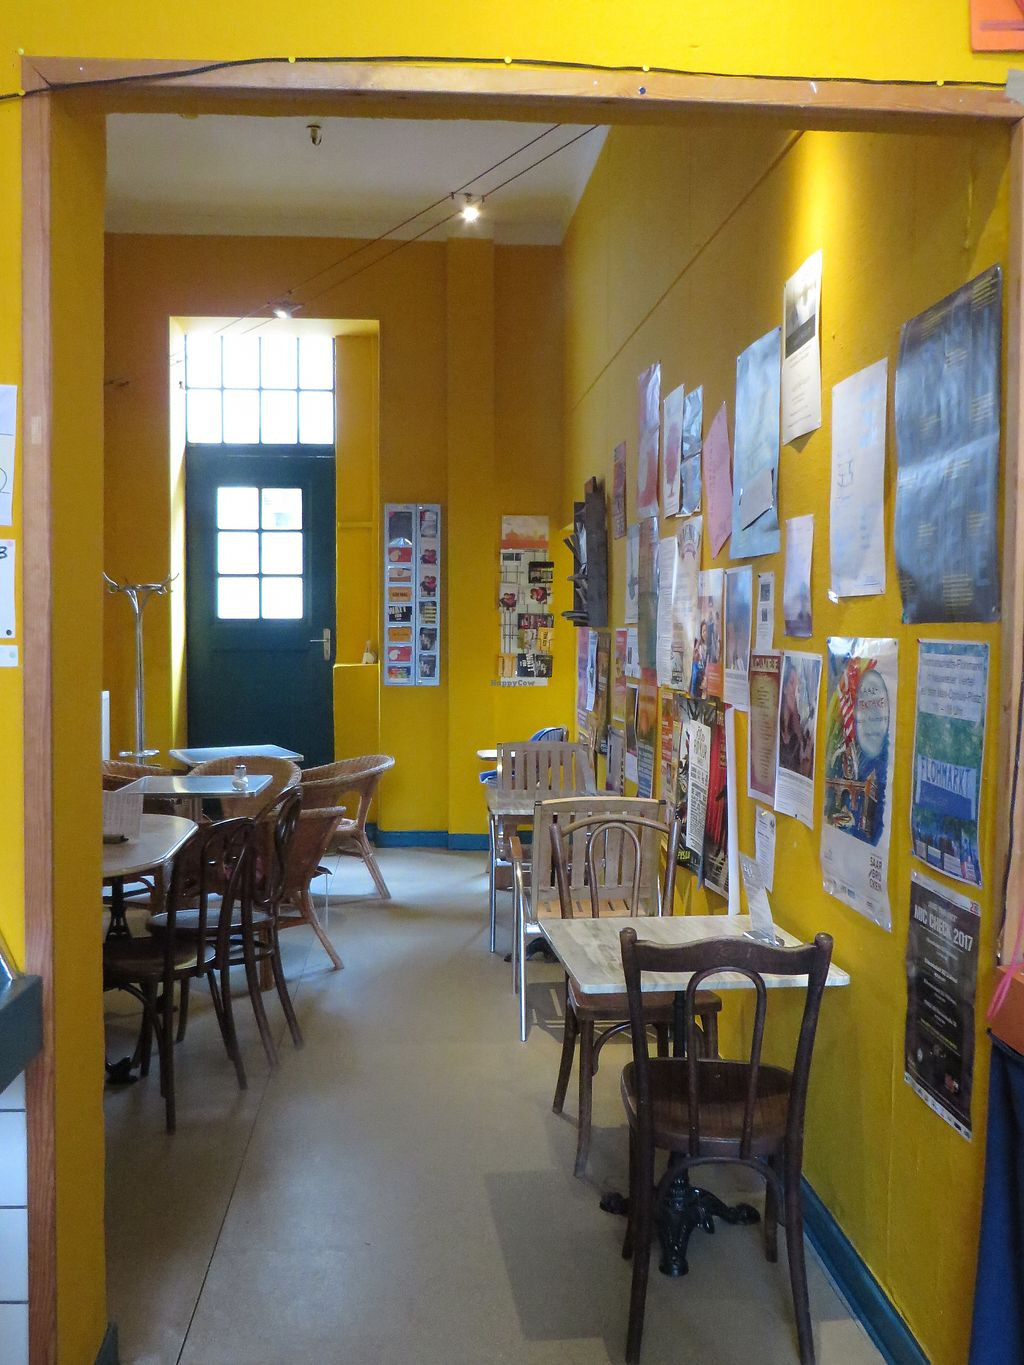 """Photo of Cafe Schrill  by <a href=""""/members/profile/VegiAnna"""">VegiAnna</a> <br/>Inside the café <br/> July 26, 2017  - <a href='/contact/abuse/image/68303/284875'>Report</a>"""